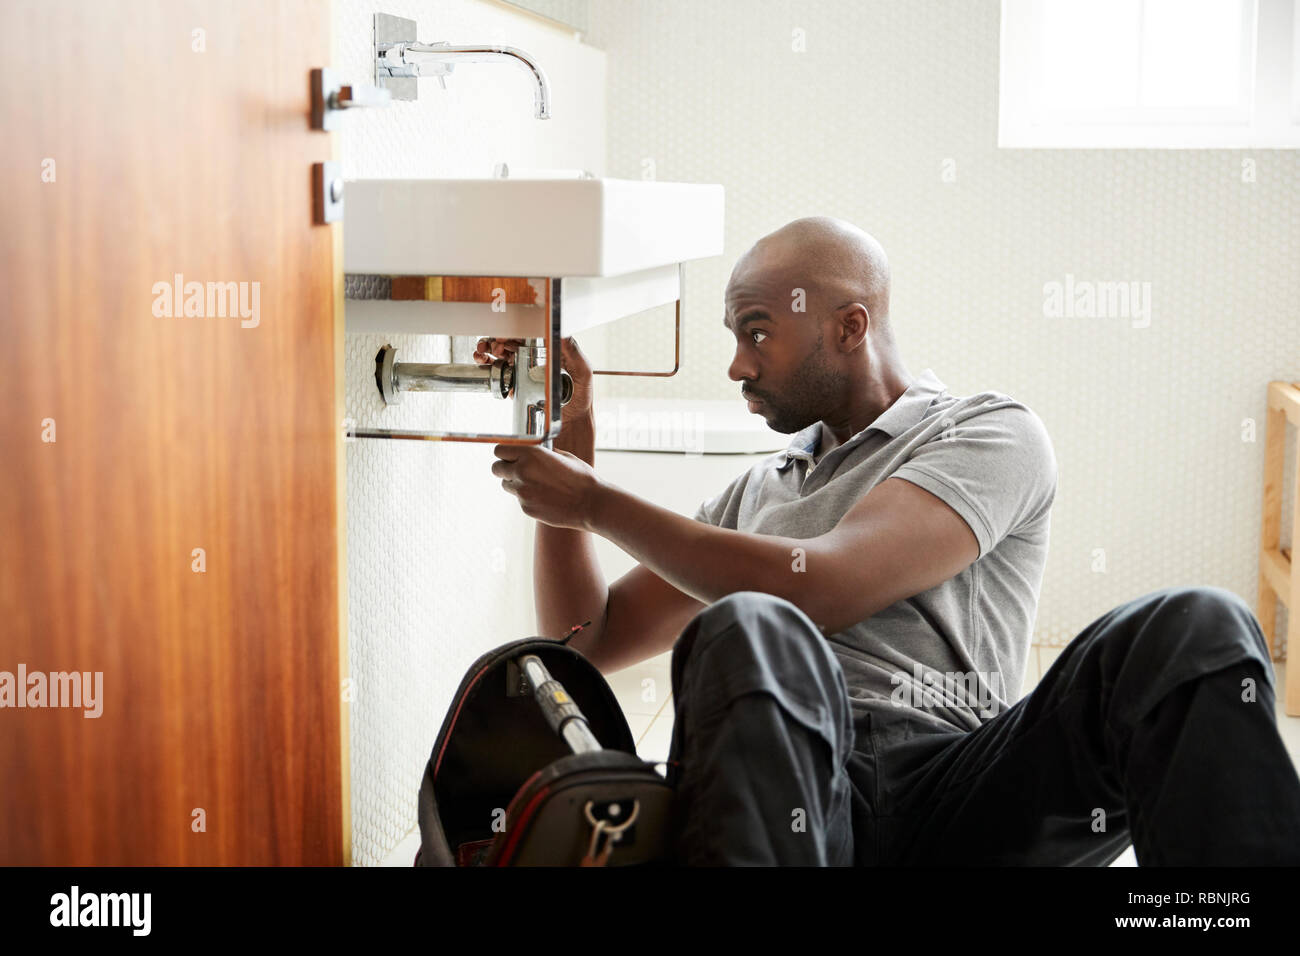 Young black male plumber sitting on the floor fixing a bathroom sink, seen from doorway - Stock Image